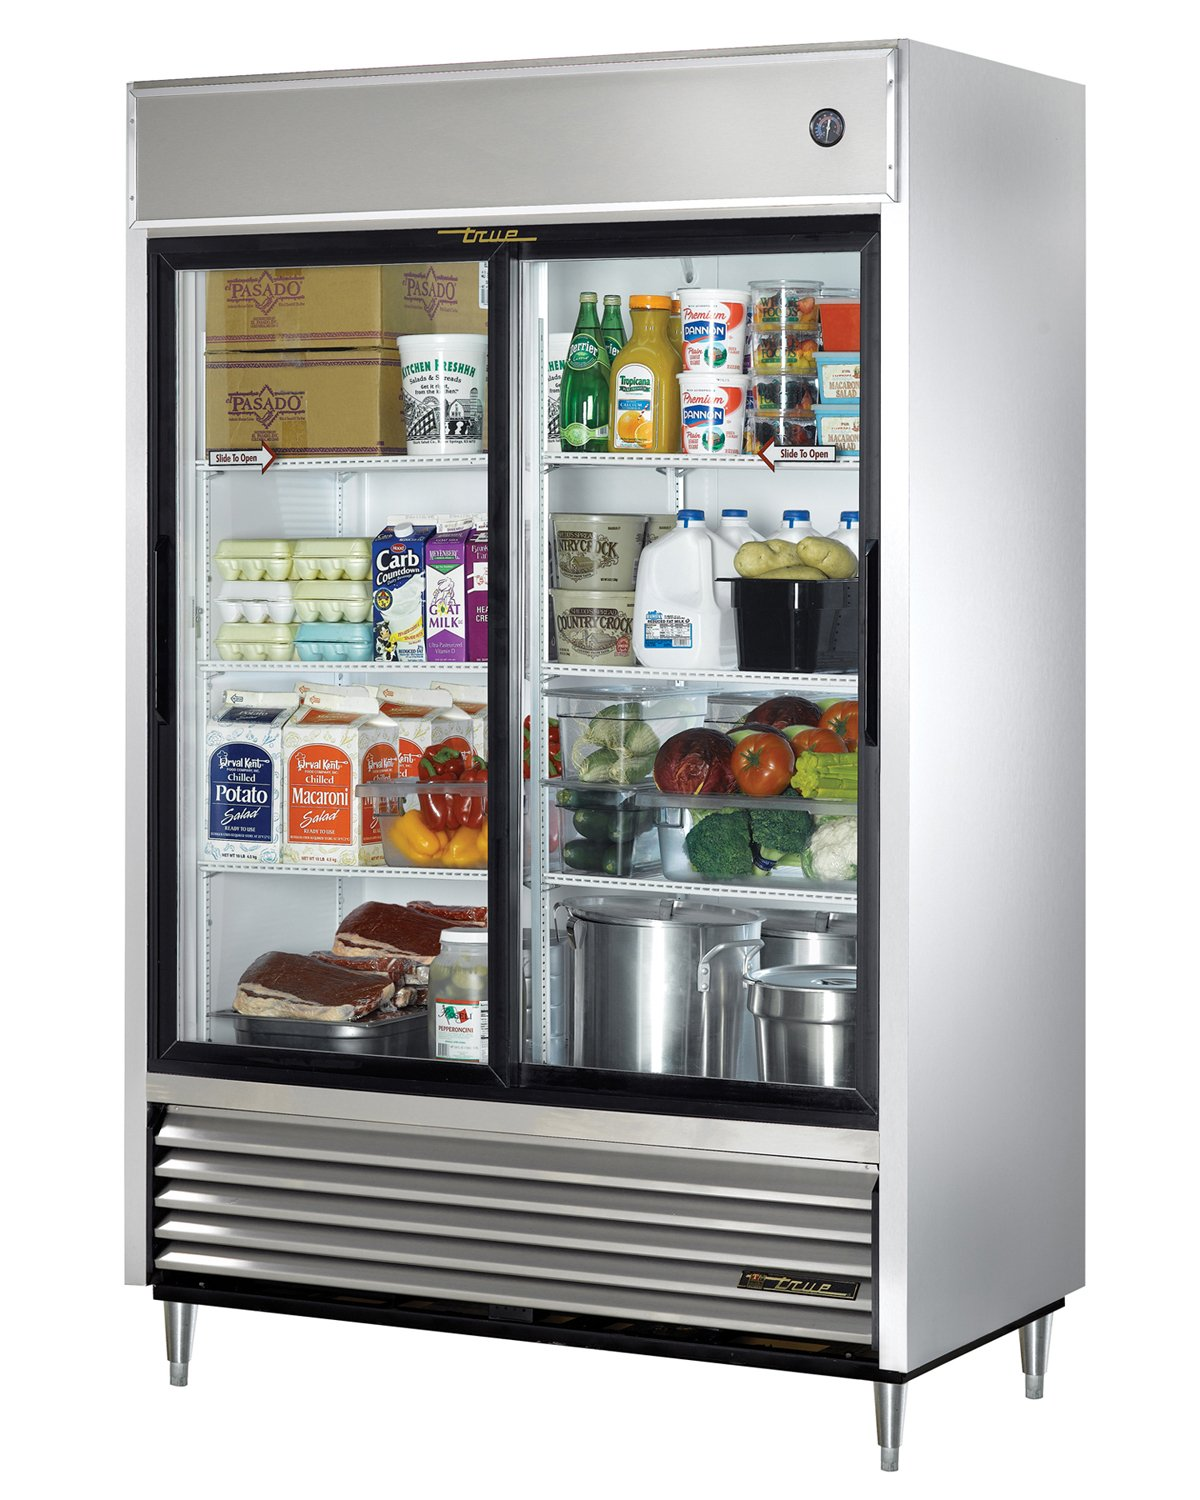 Com True Tsd 47g Ld 2 Door Sliding Glass Refrigerator Industrial Scientific